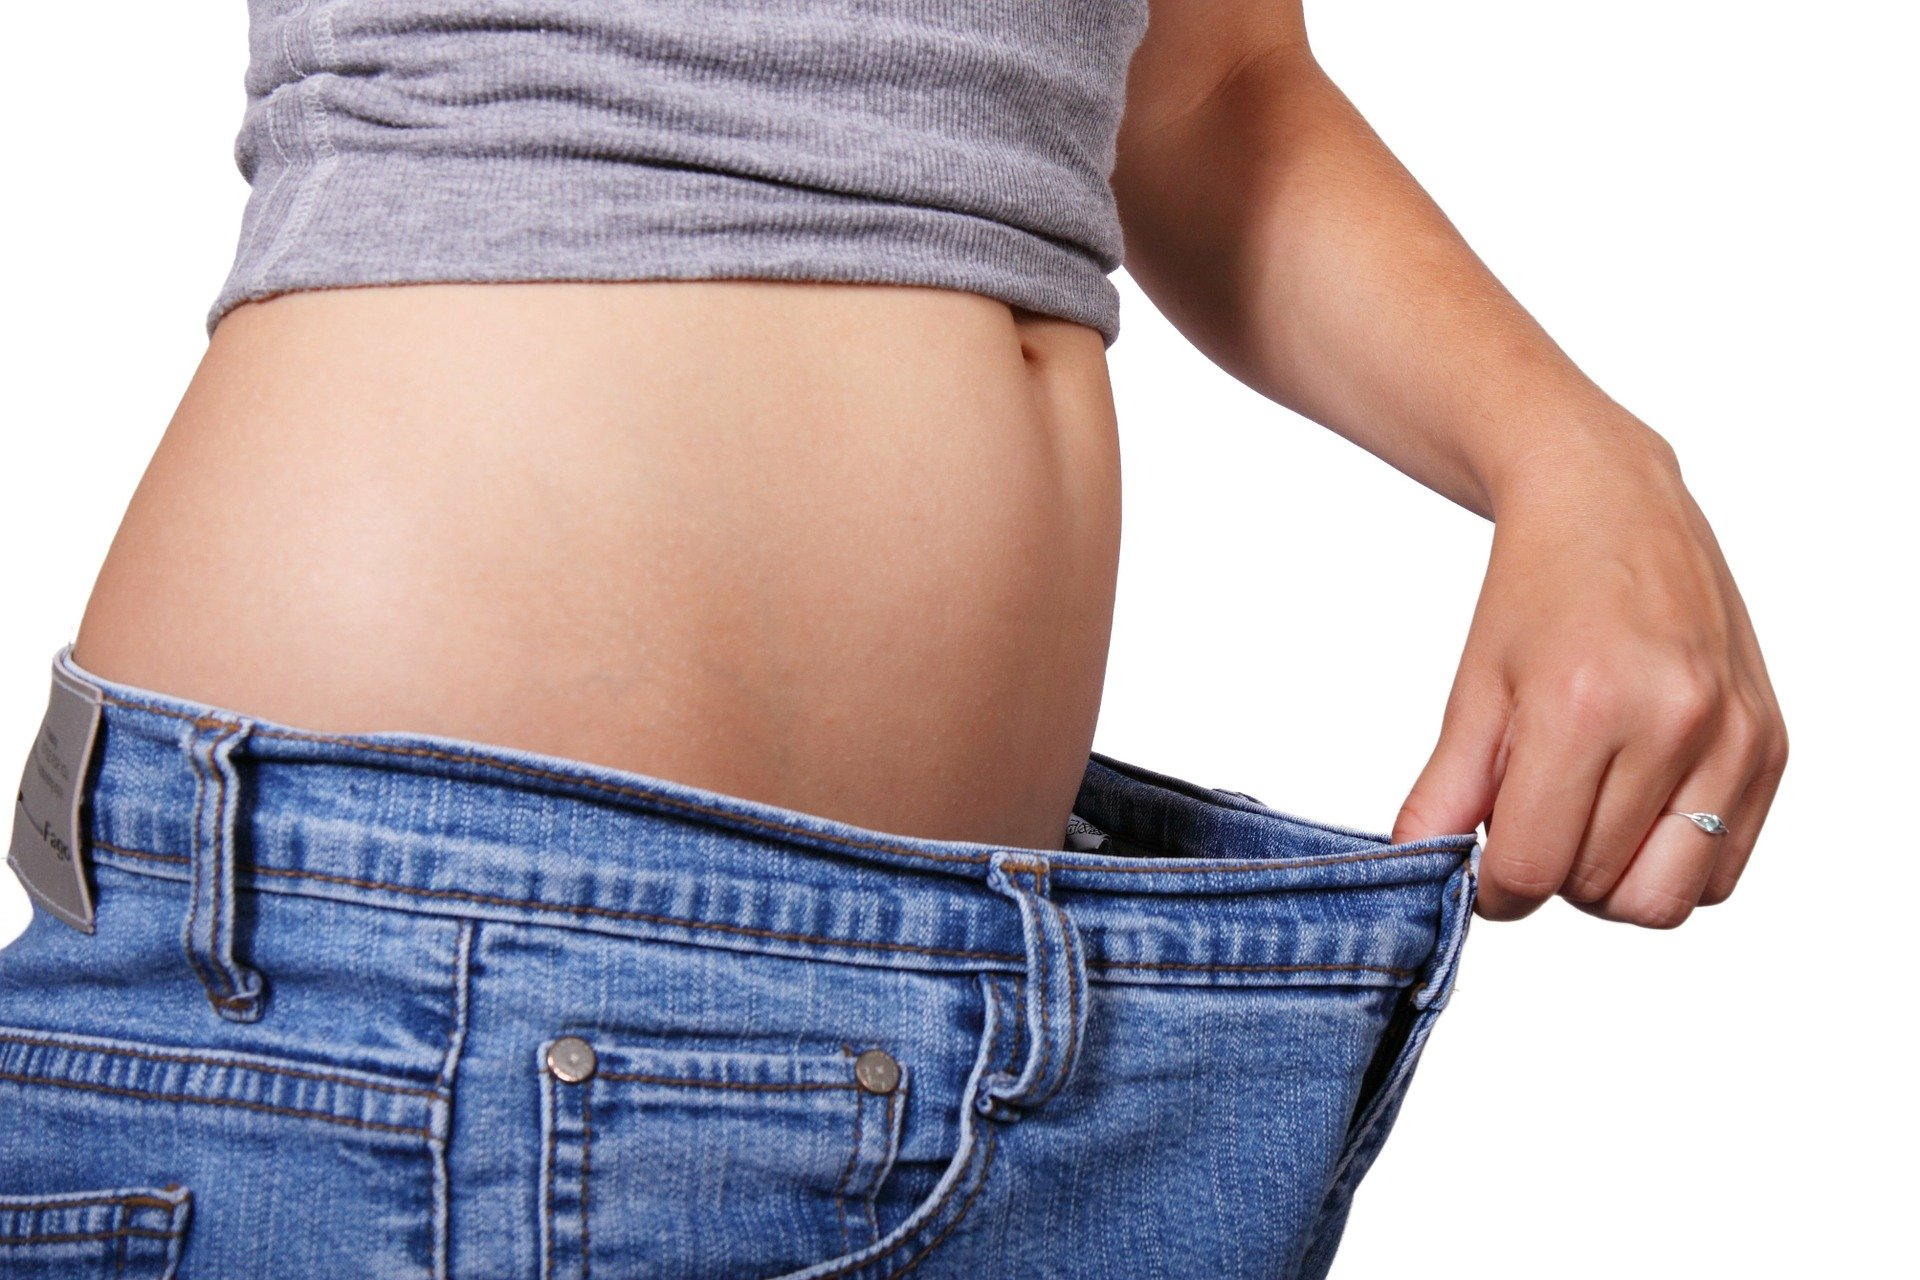 a woman's belly and the waist of her jeans stretched out to show her weight loss